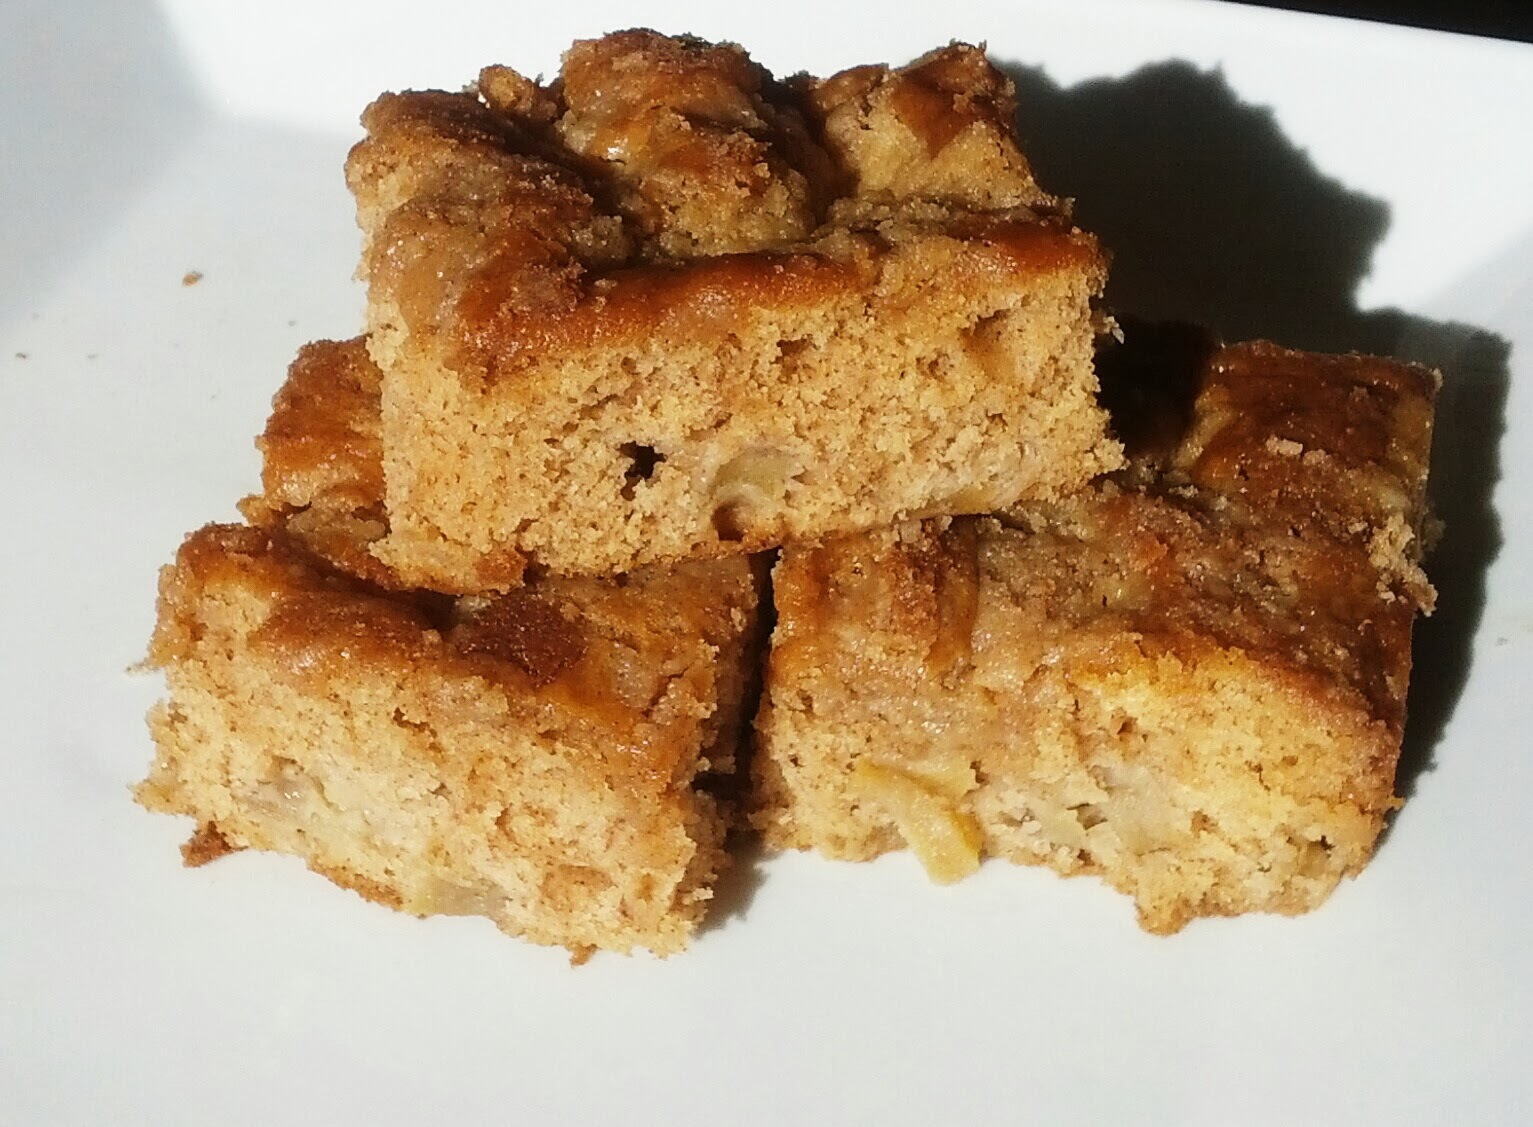 Yipson Foods Recipes and Blog: Apple Coffee Cake with Crumble Topping